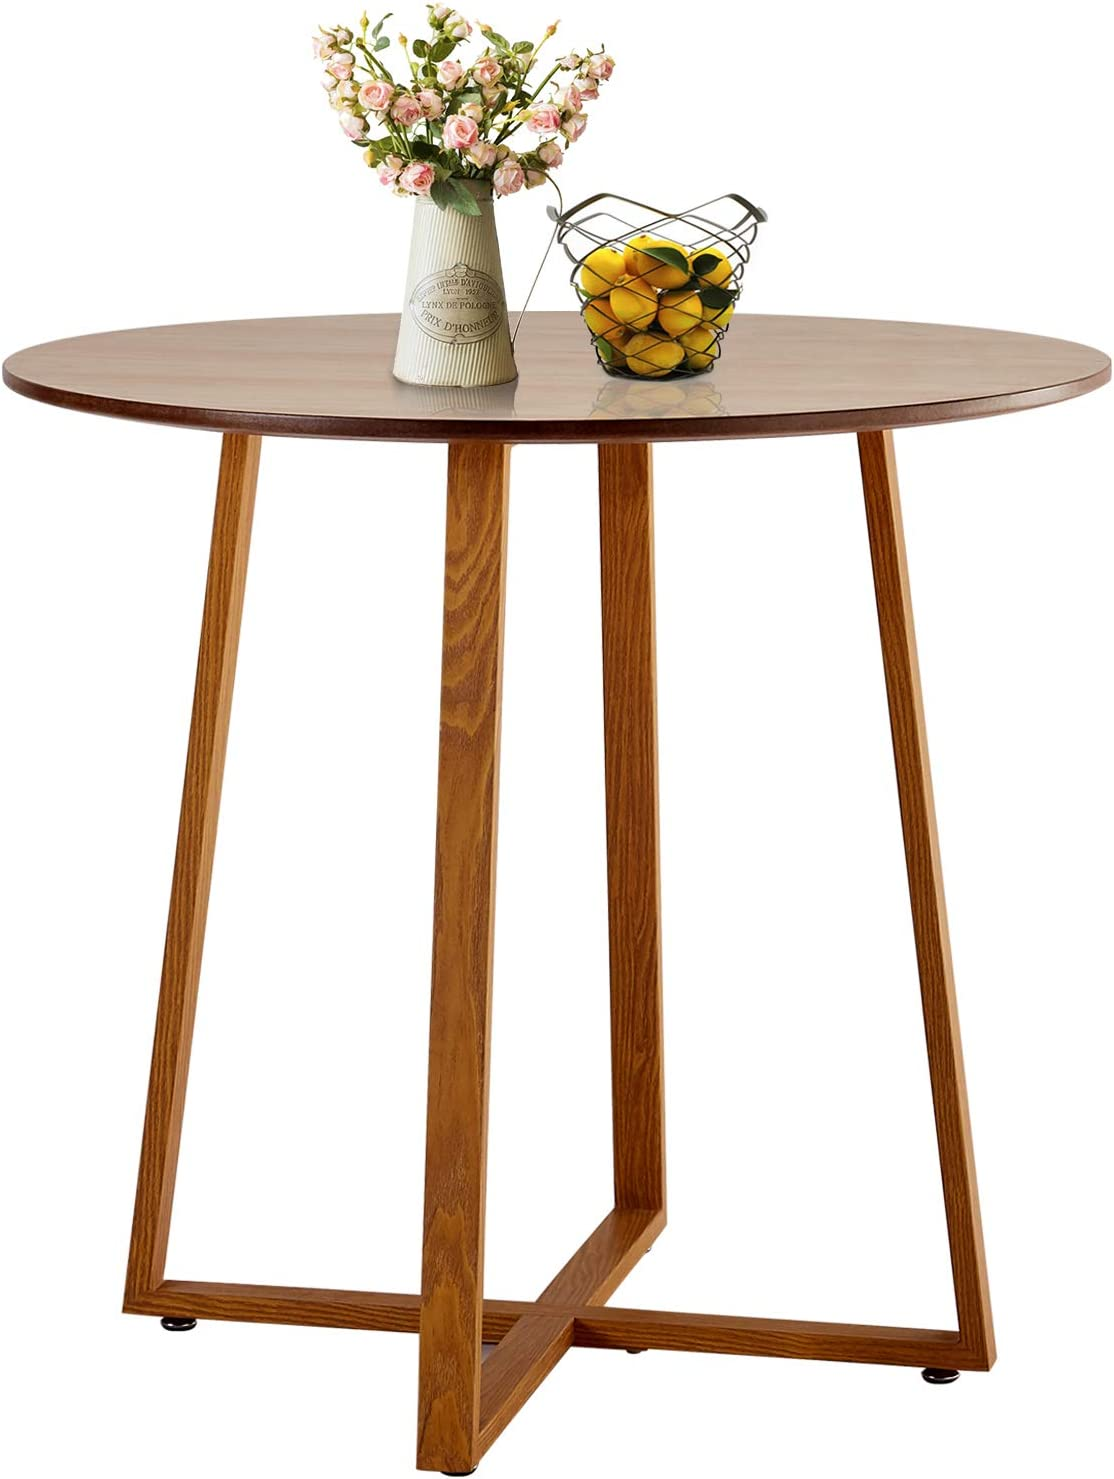 VECELO Kitchen Dining Round Solid Wood Coffee Tables Office Conference Pedestal Desk with Natural Wooden Rectangle Legs, Log